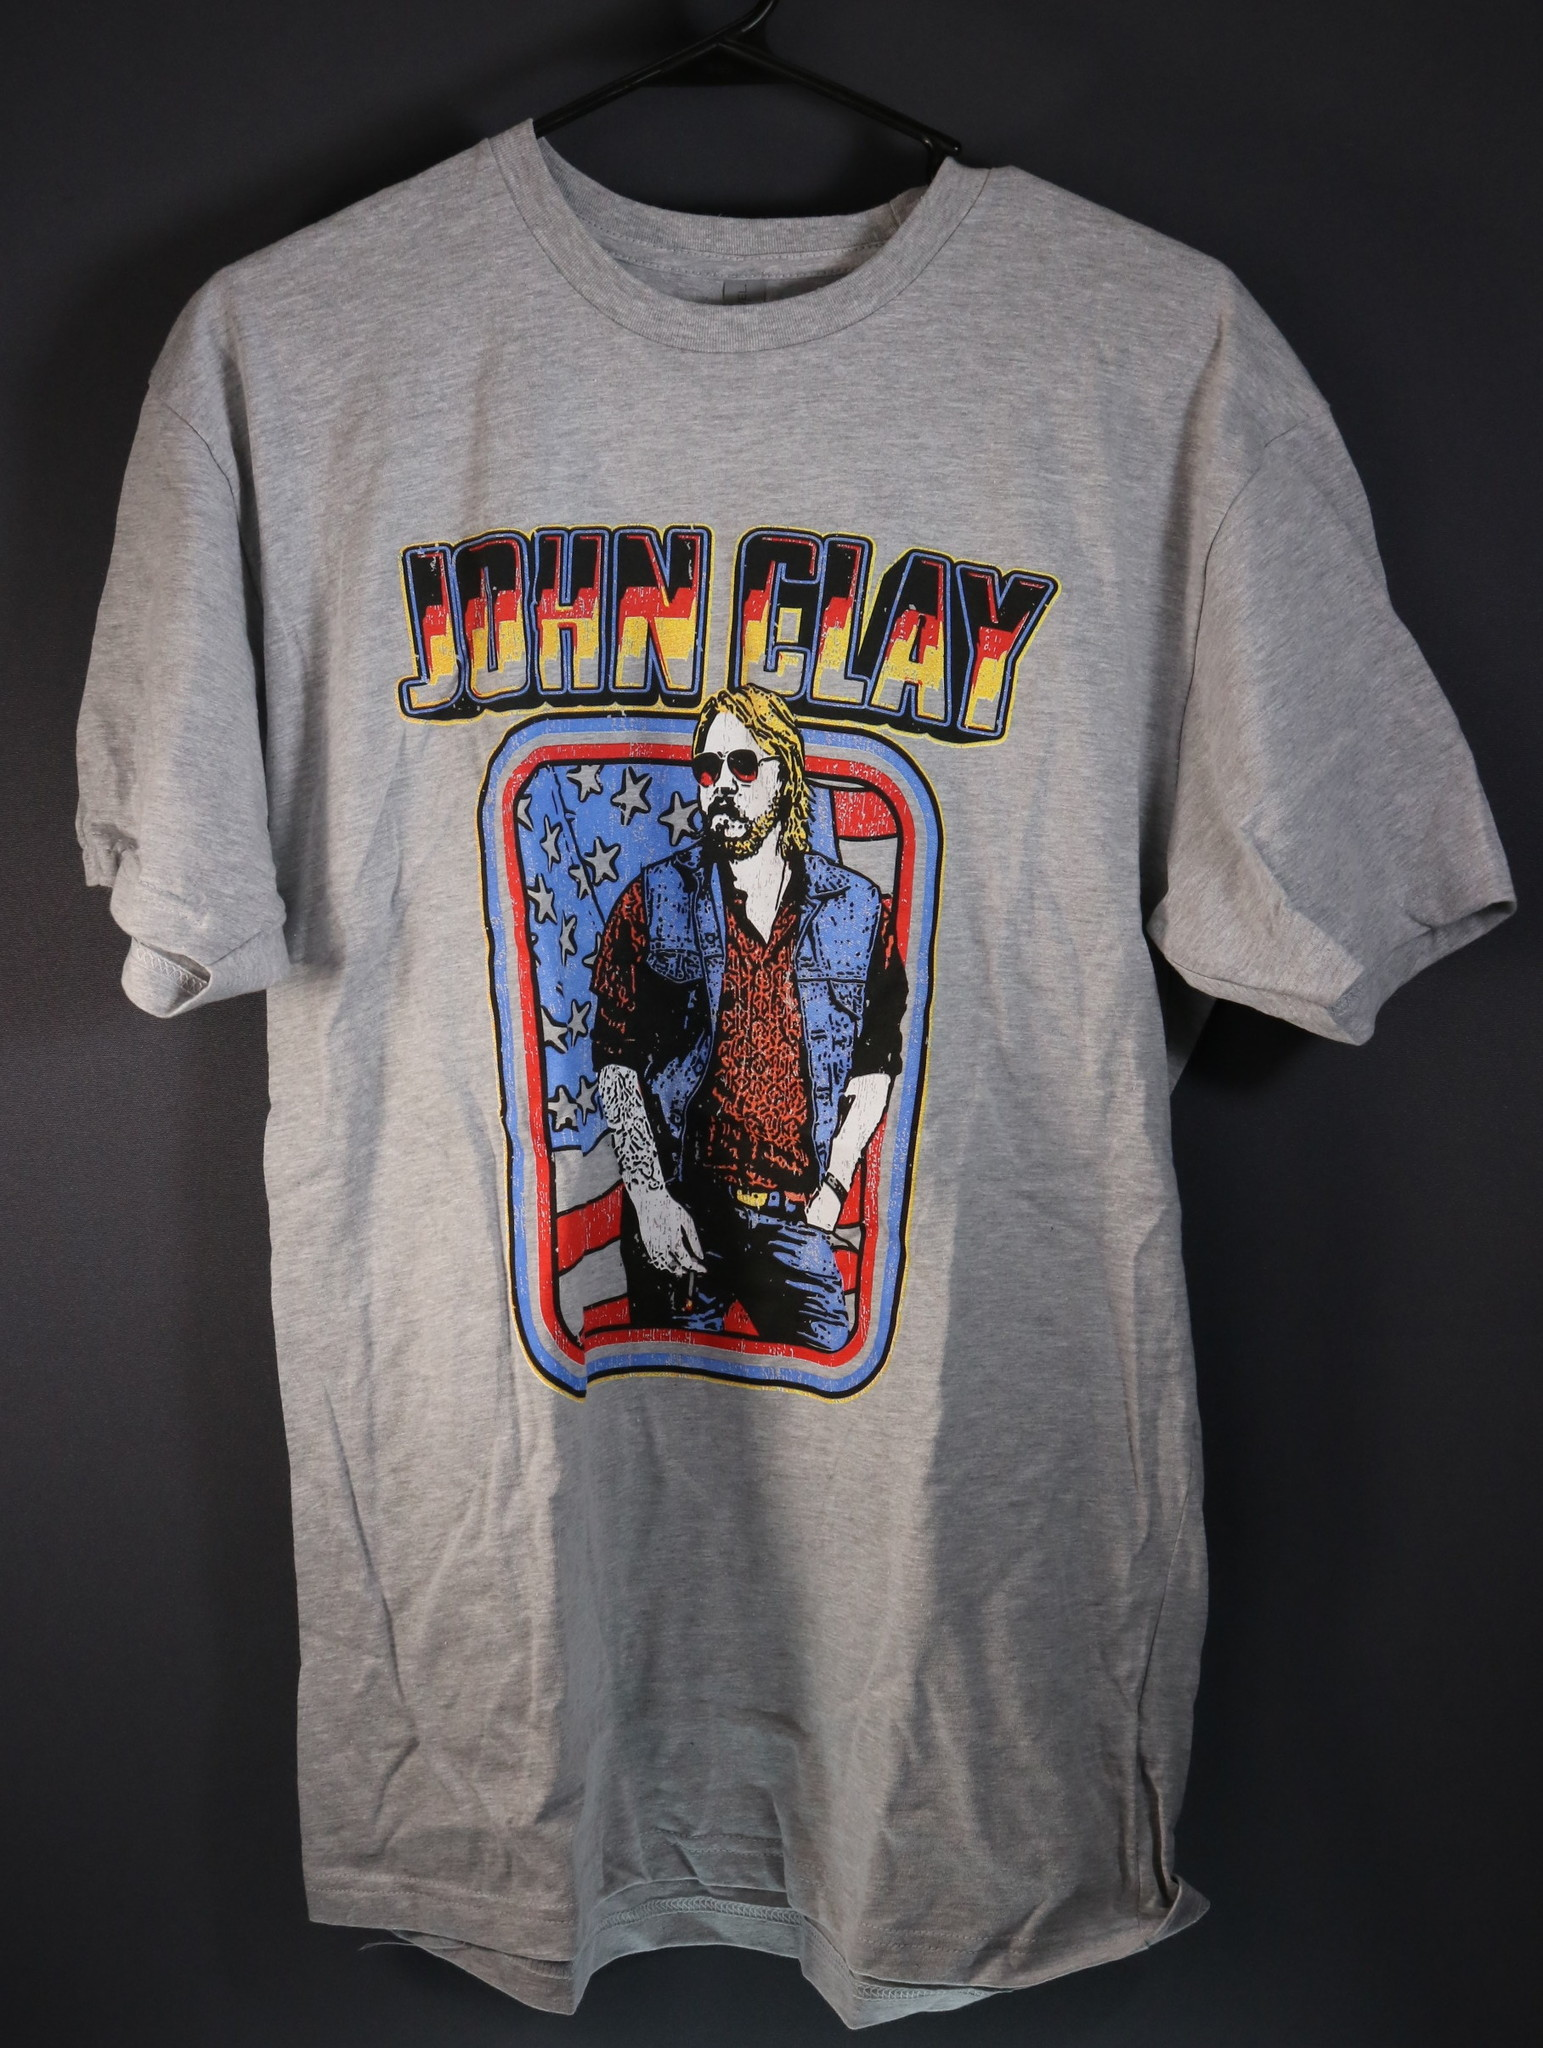 Local Music NEW John Clay T-Shirt - Small